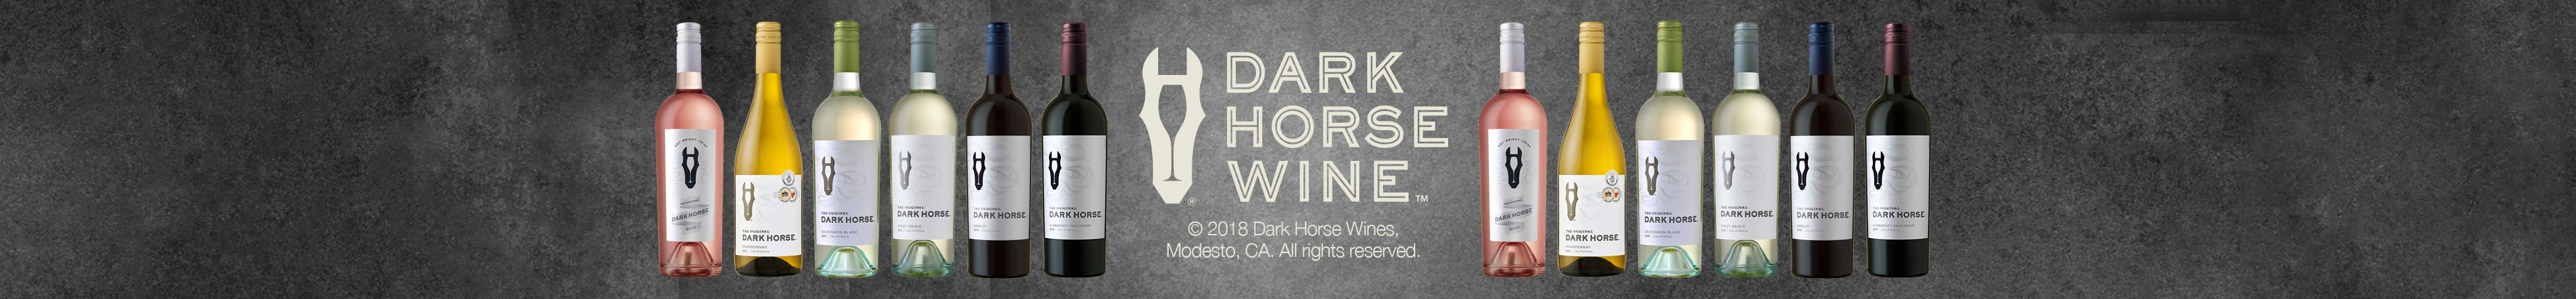 olive chef awards dark horse